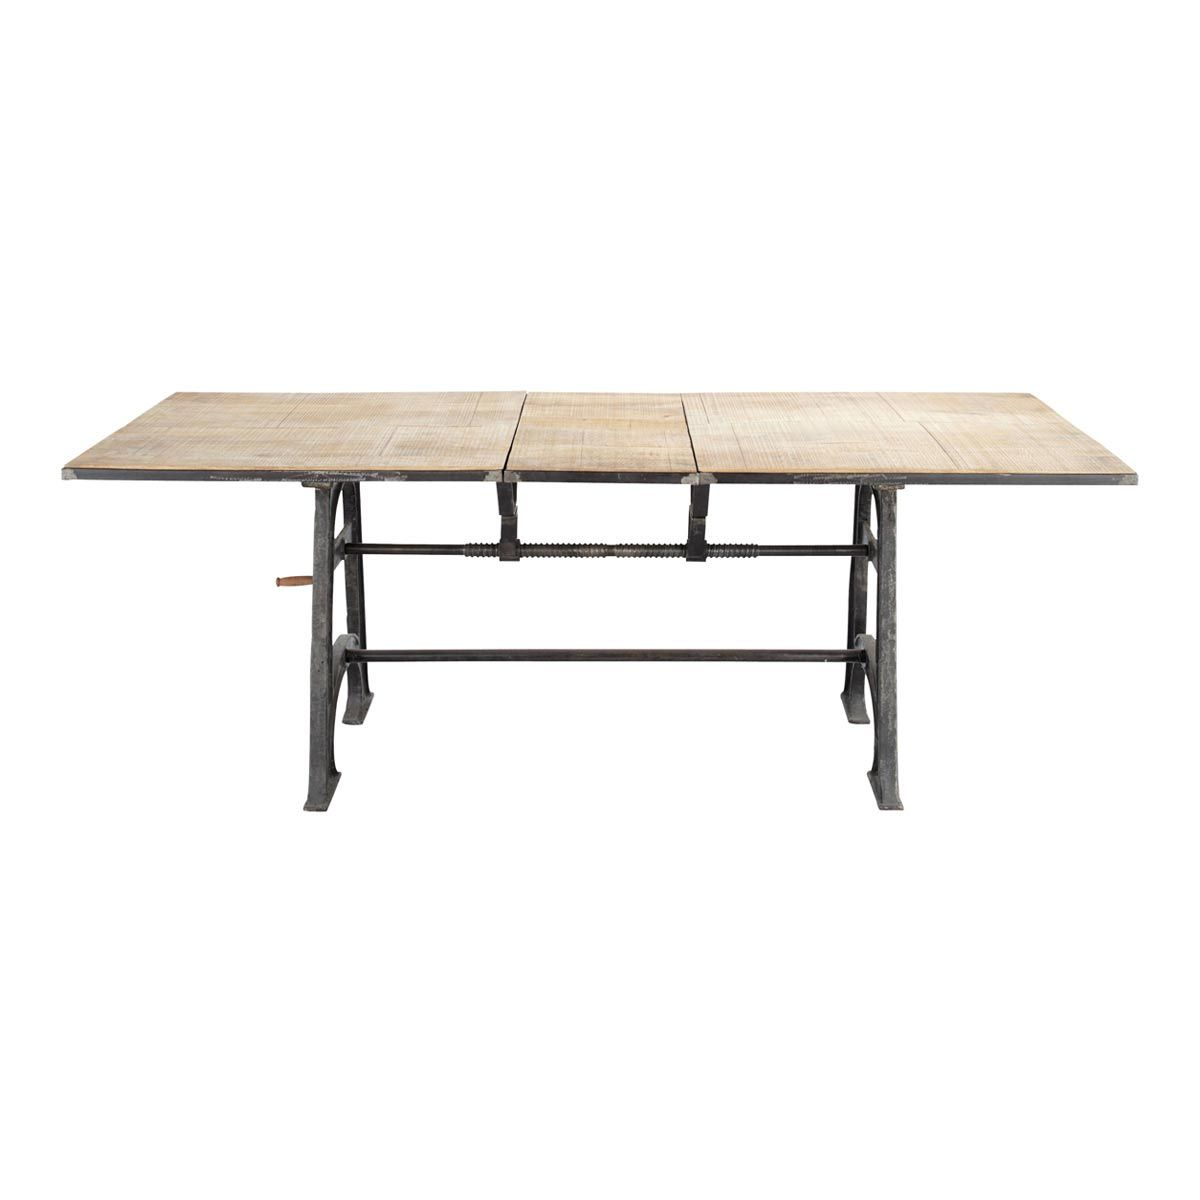 Industrial Extendible Seater Dining Table L wood